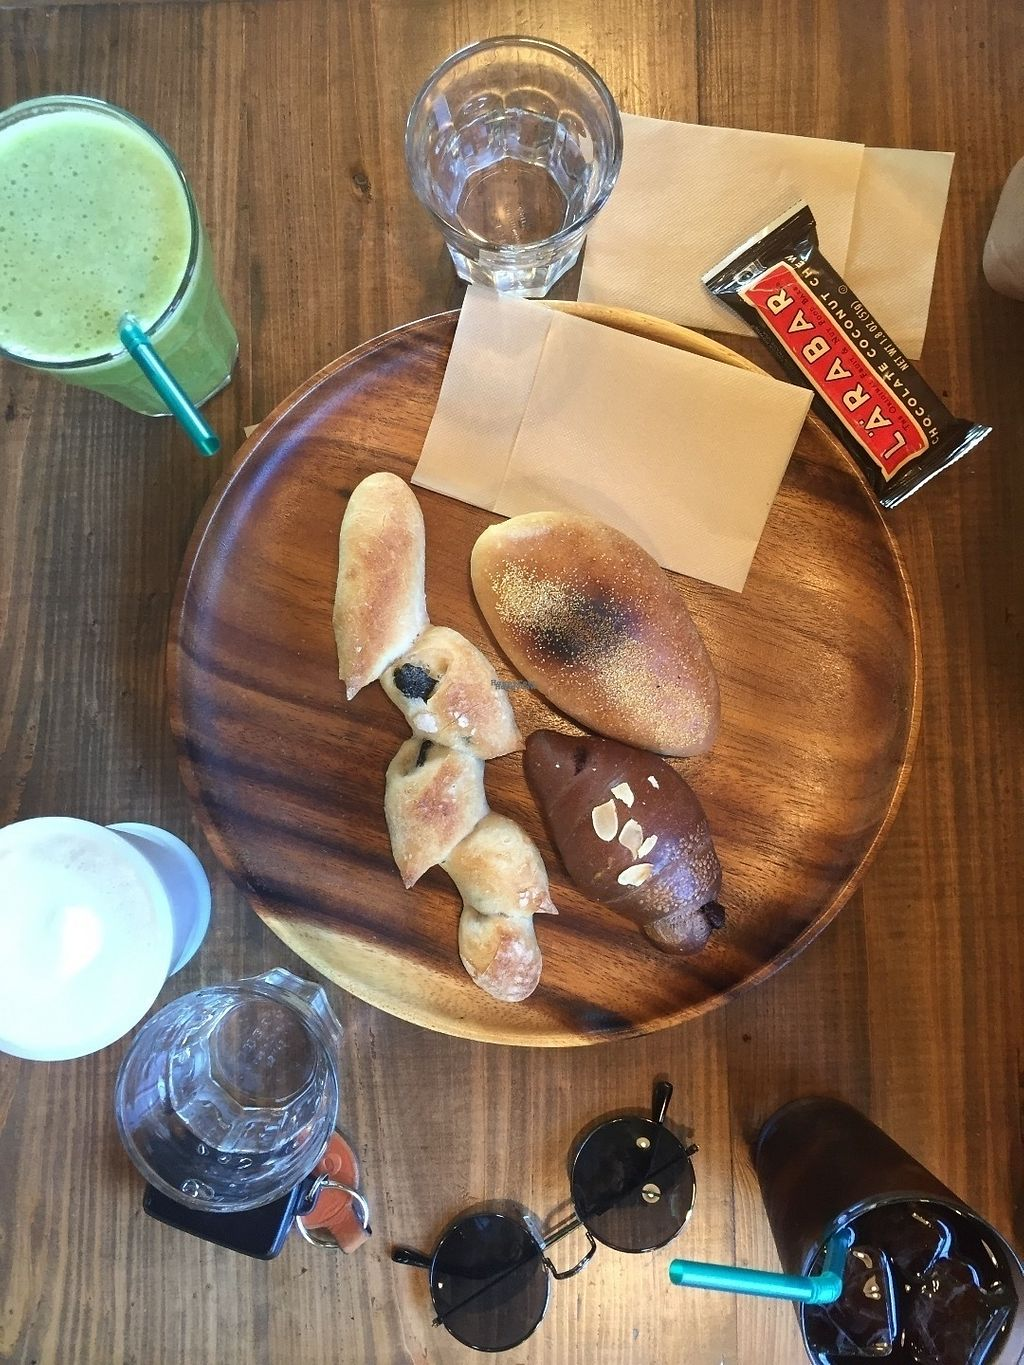 """Photo of CLOSED: Bakery and Cafe Coo  by <a href=""""/members/profile/nannanaps"""">nannanaps</a> <br/>Olive bread, chocolate bread and bread roll filled with curry. They also had larabars for sale! :) <br/> September 11, 2016  - <a href='/contact/abuse/image/44610/175041'>Report</a>"""